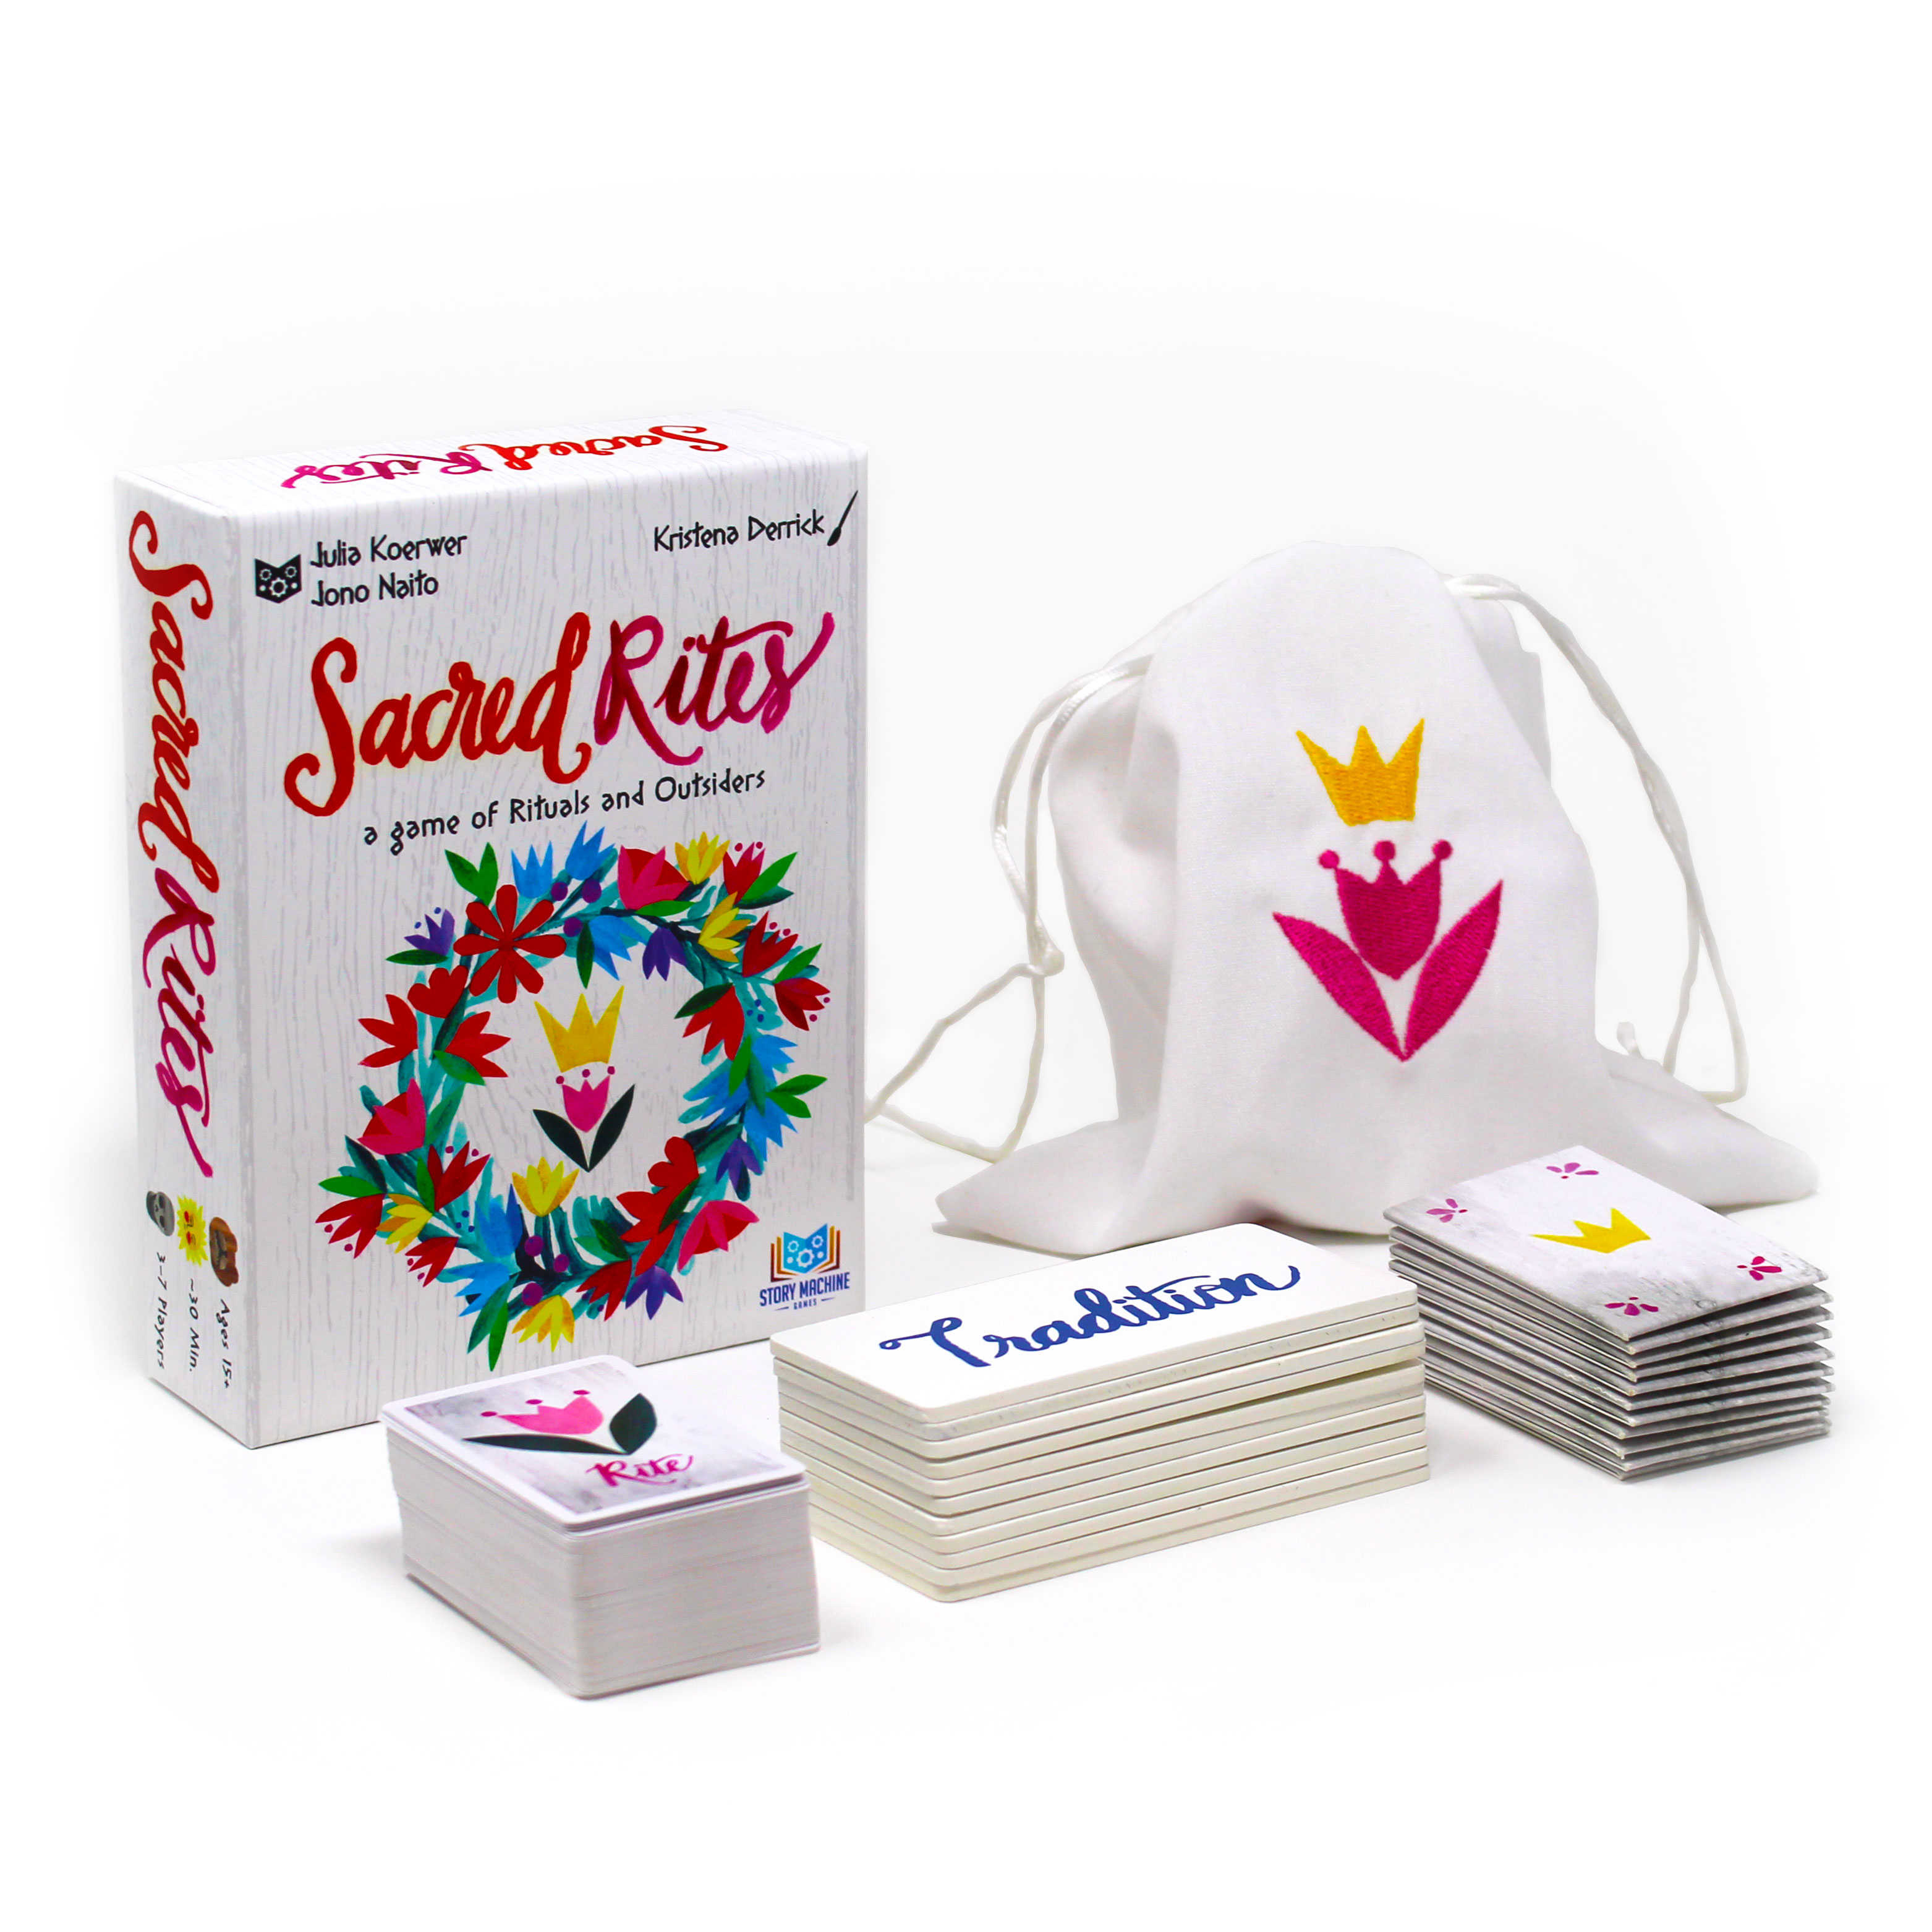 The components of Sacred Rites - box, cards, tiles, envelopes, and embroidered cloth bag.